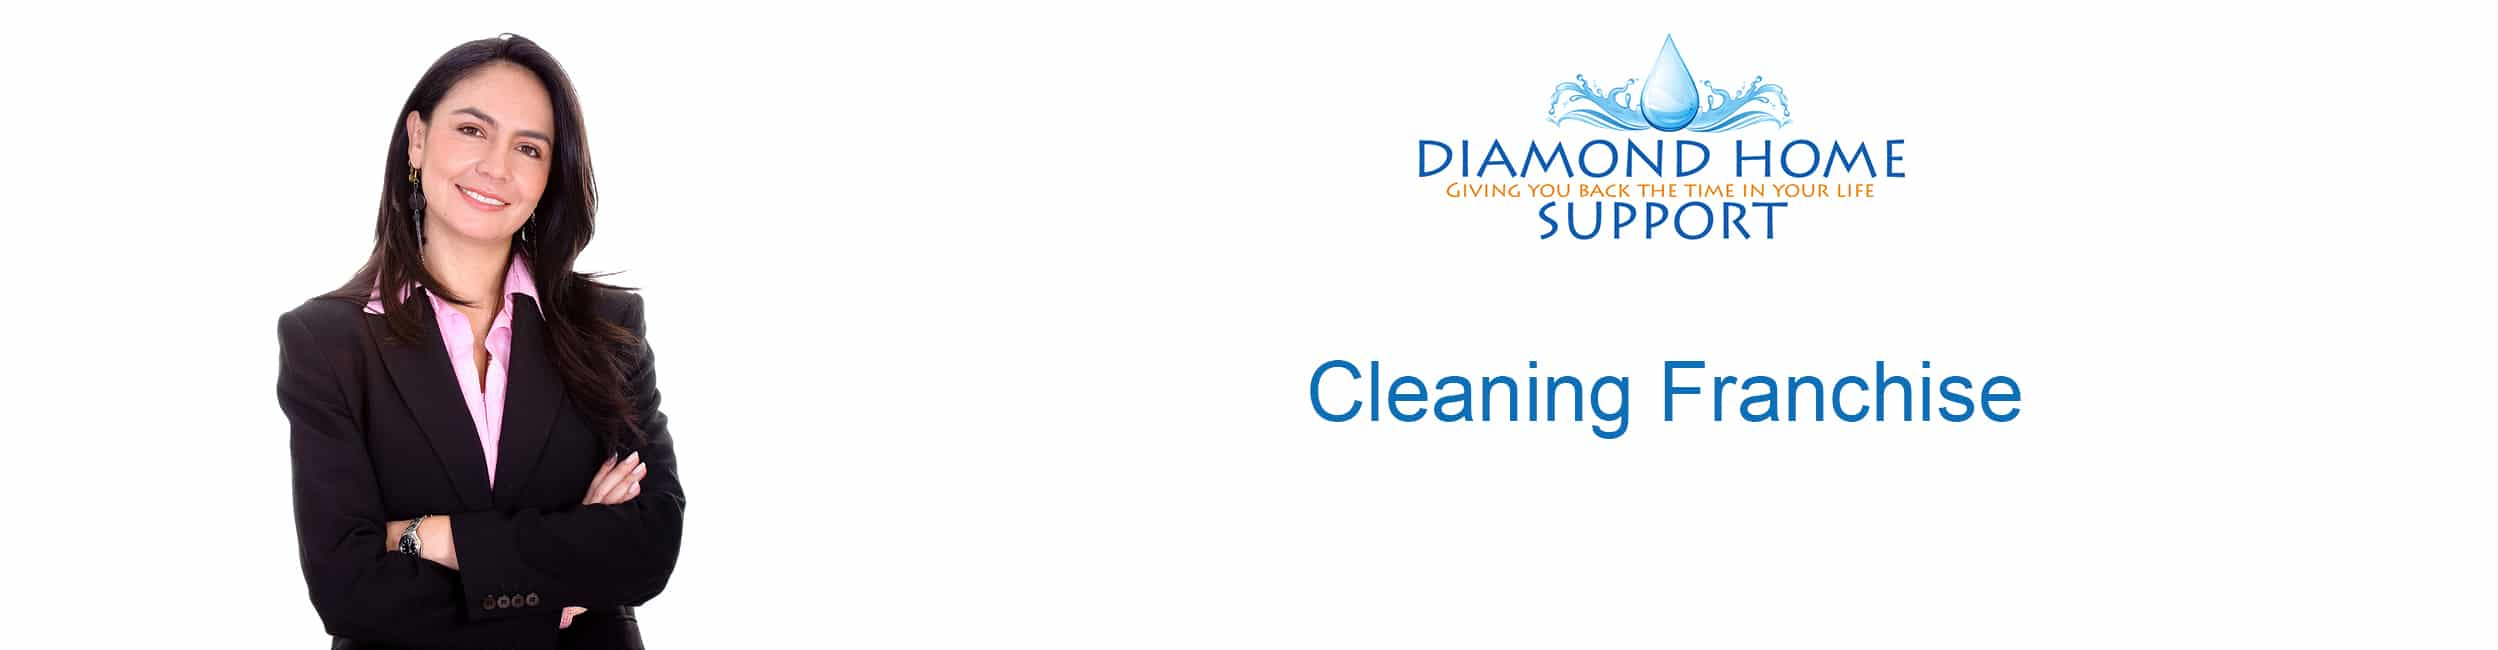 Diamond Home Support Domestic Cleaning Franchise Reviews